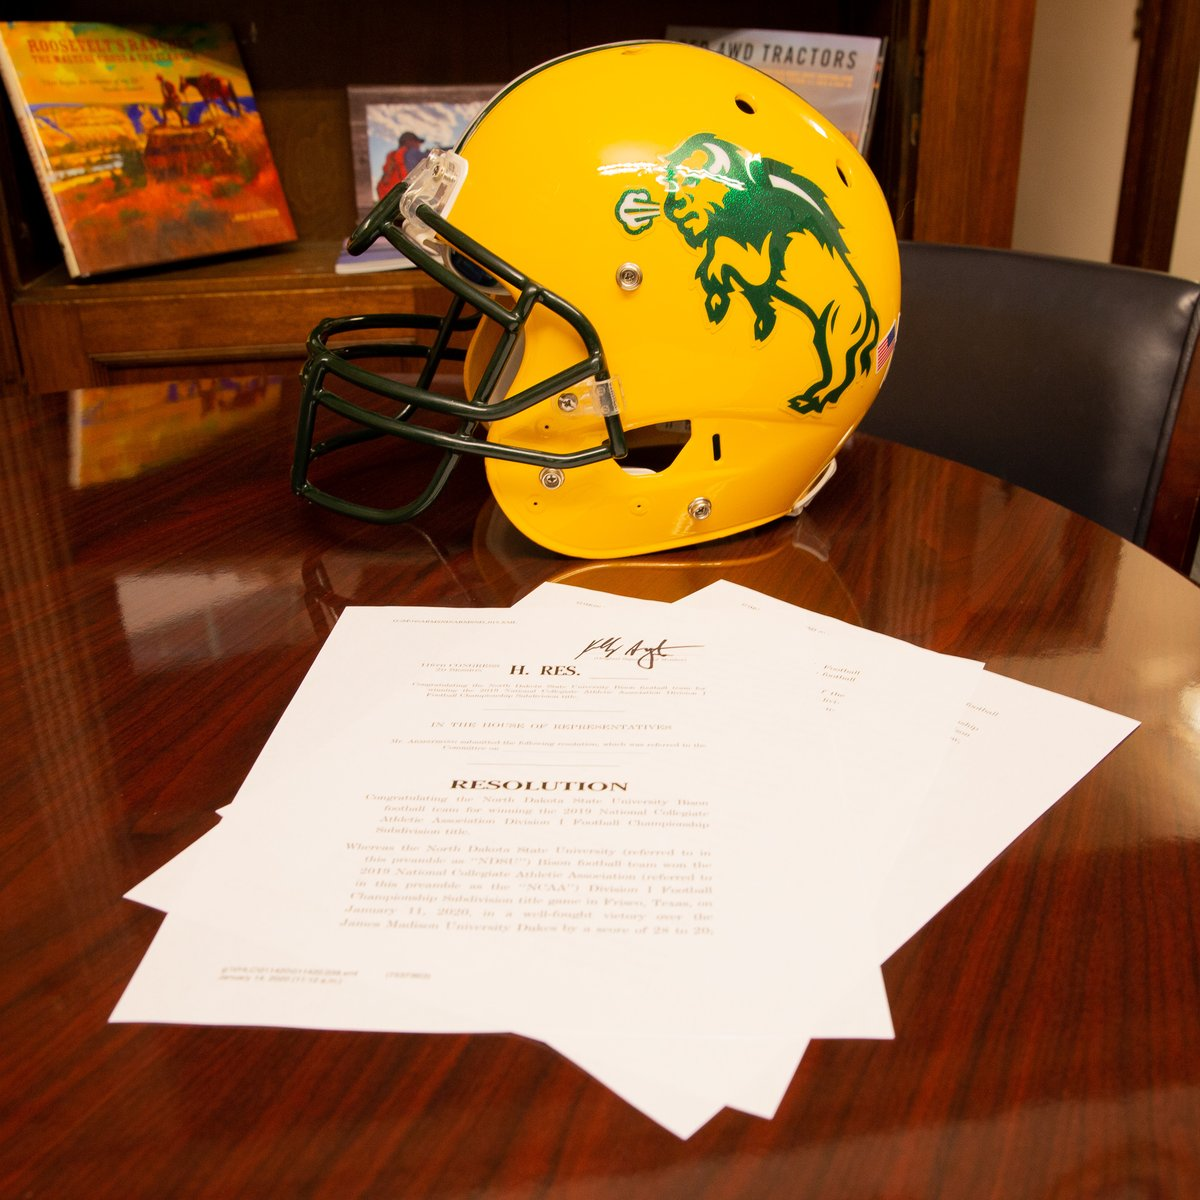 I joined @SenJohnHoeven and @SenKevinCramer in introducing congressional resolutions this week to honor the @NDSUfootball players, coaches, & staff on another #FCSChampionship title. Congrats again, Bison!